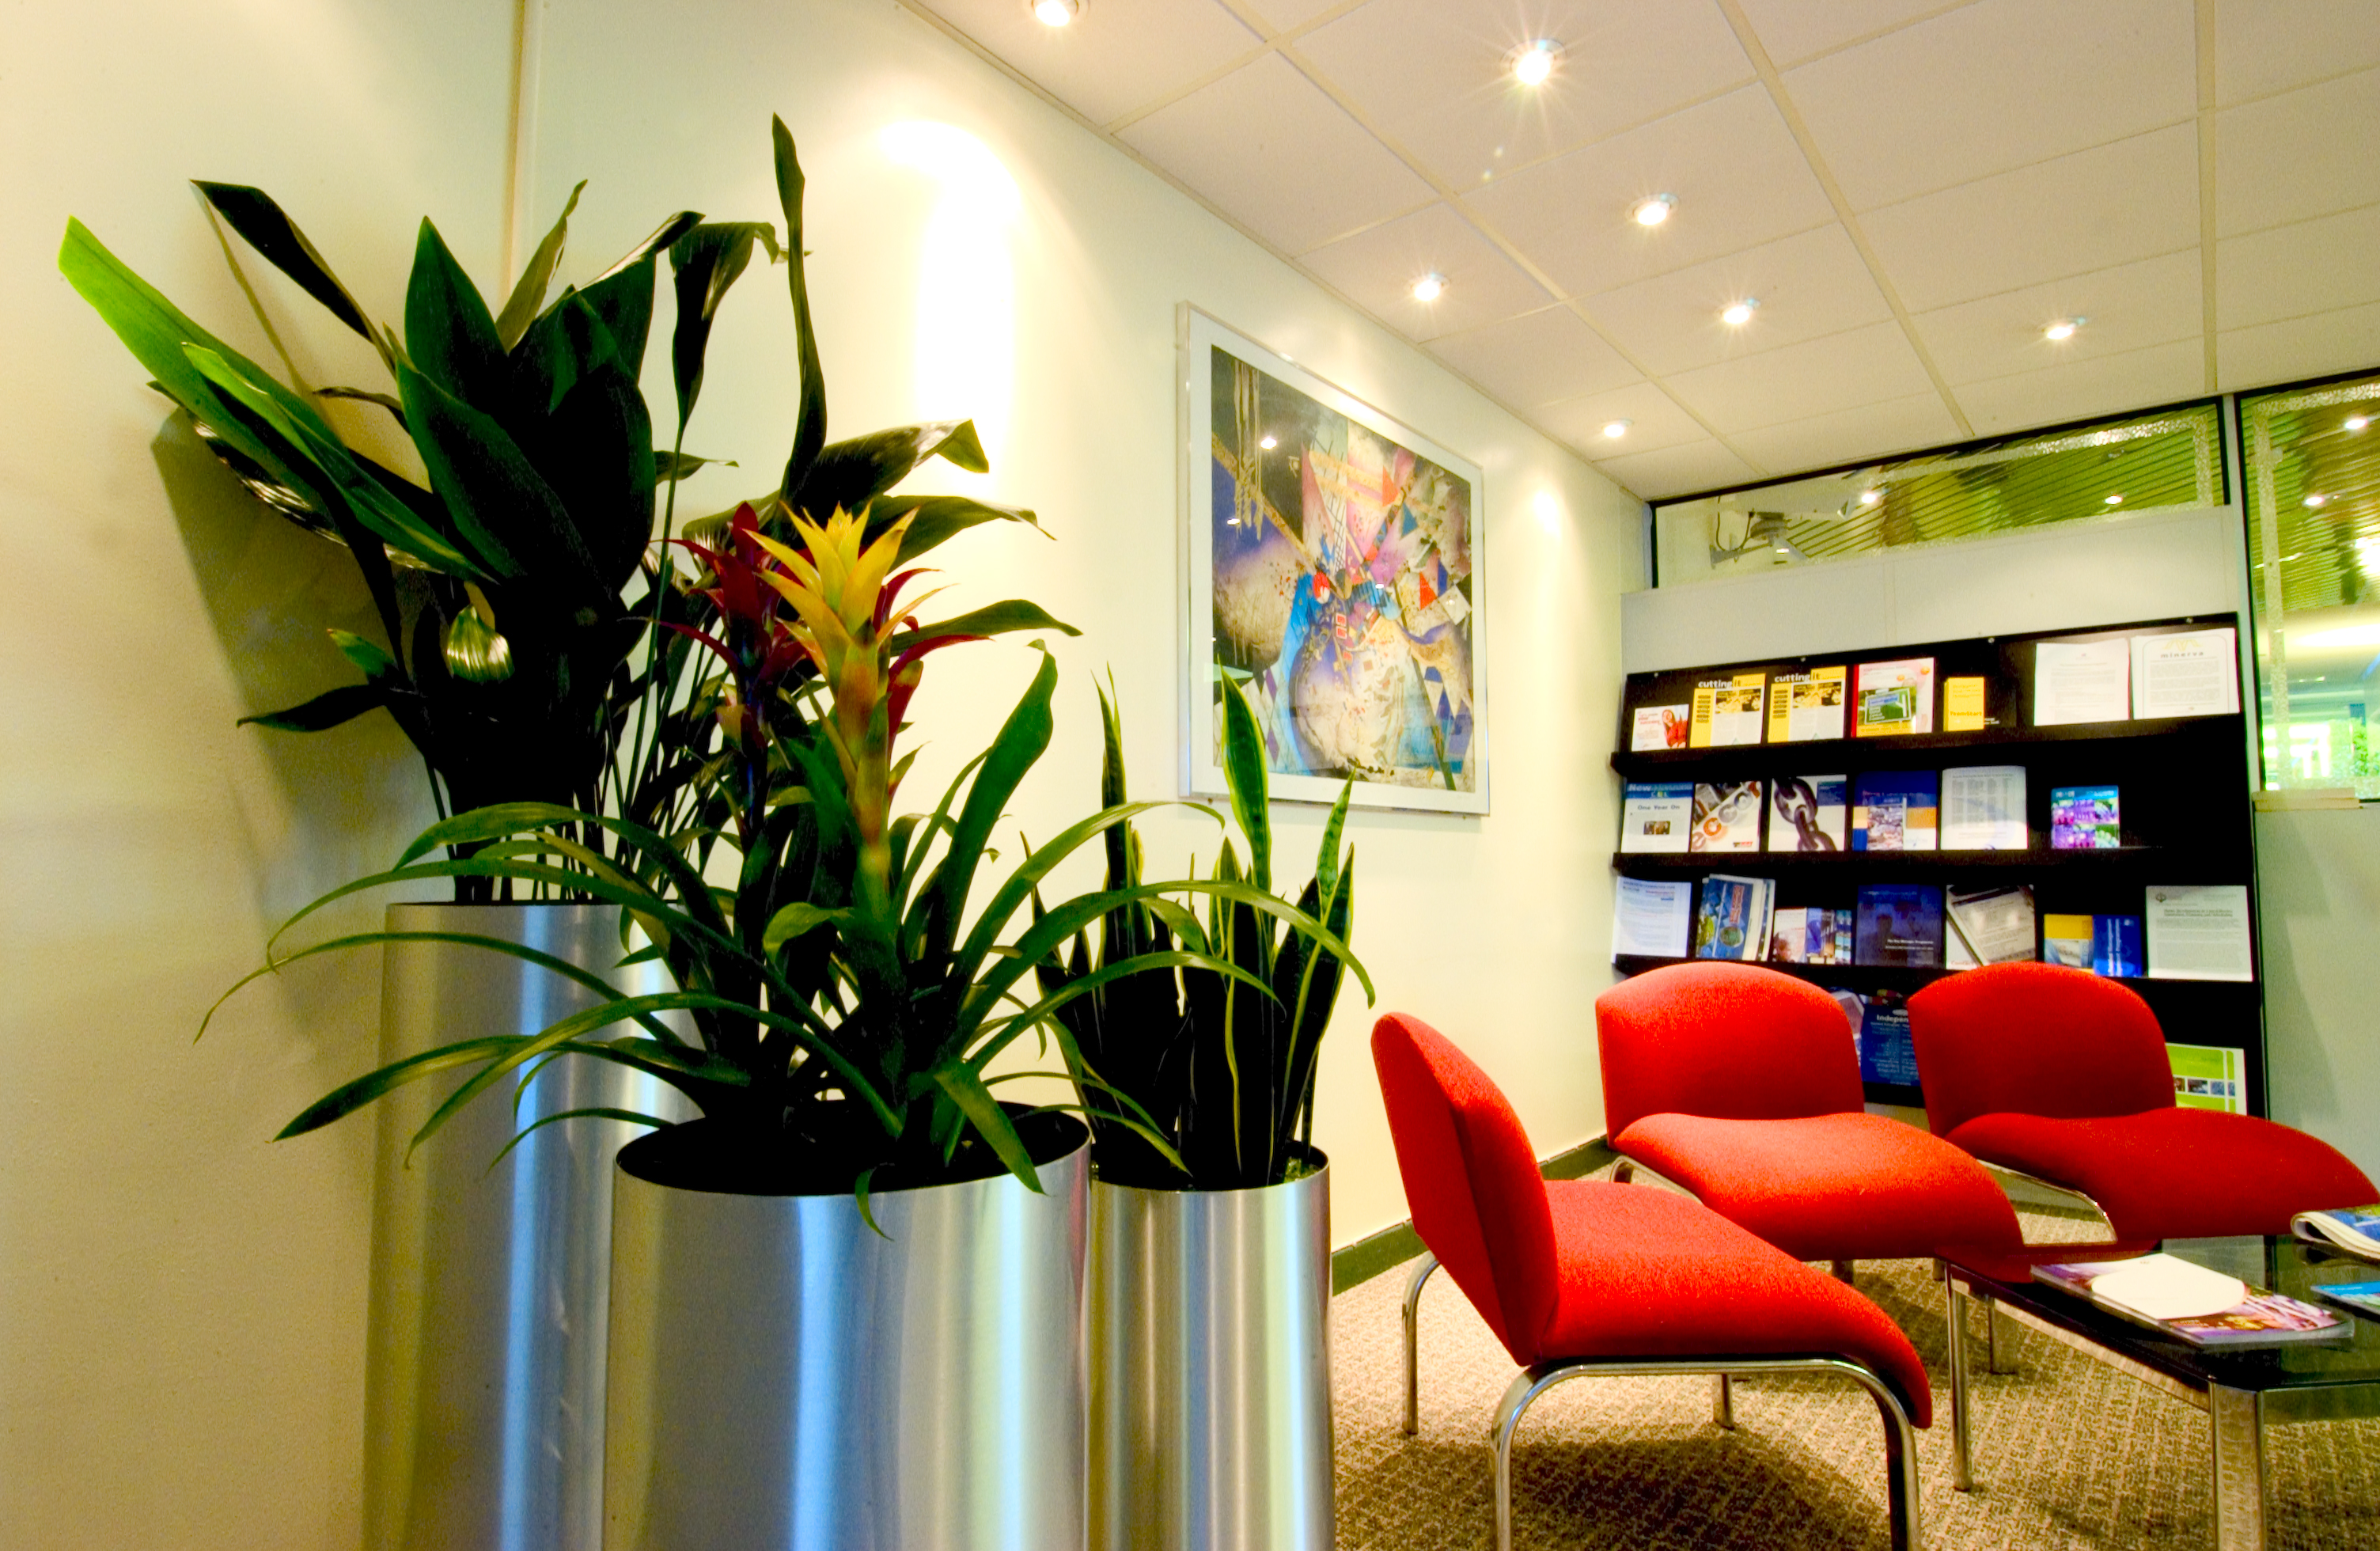 Interior landscaping office Board Room Green Scheme Has Provided Plant Displays And Interior Landscaping Solutions For Interior Landscaping Design Maintenance By Green Goddess Design Our Clients Office Plants Artificial Plants Interior Landscaping